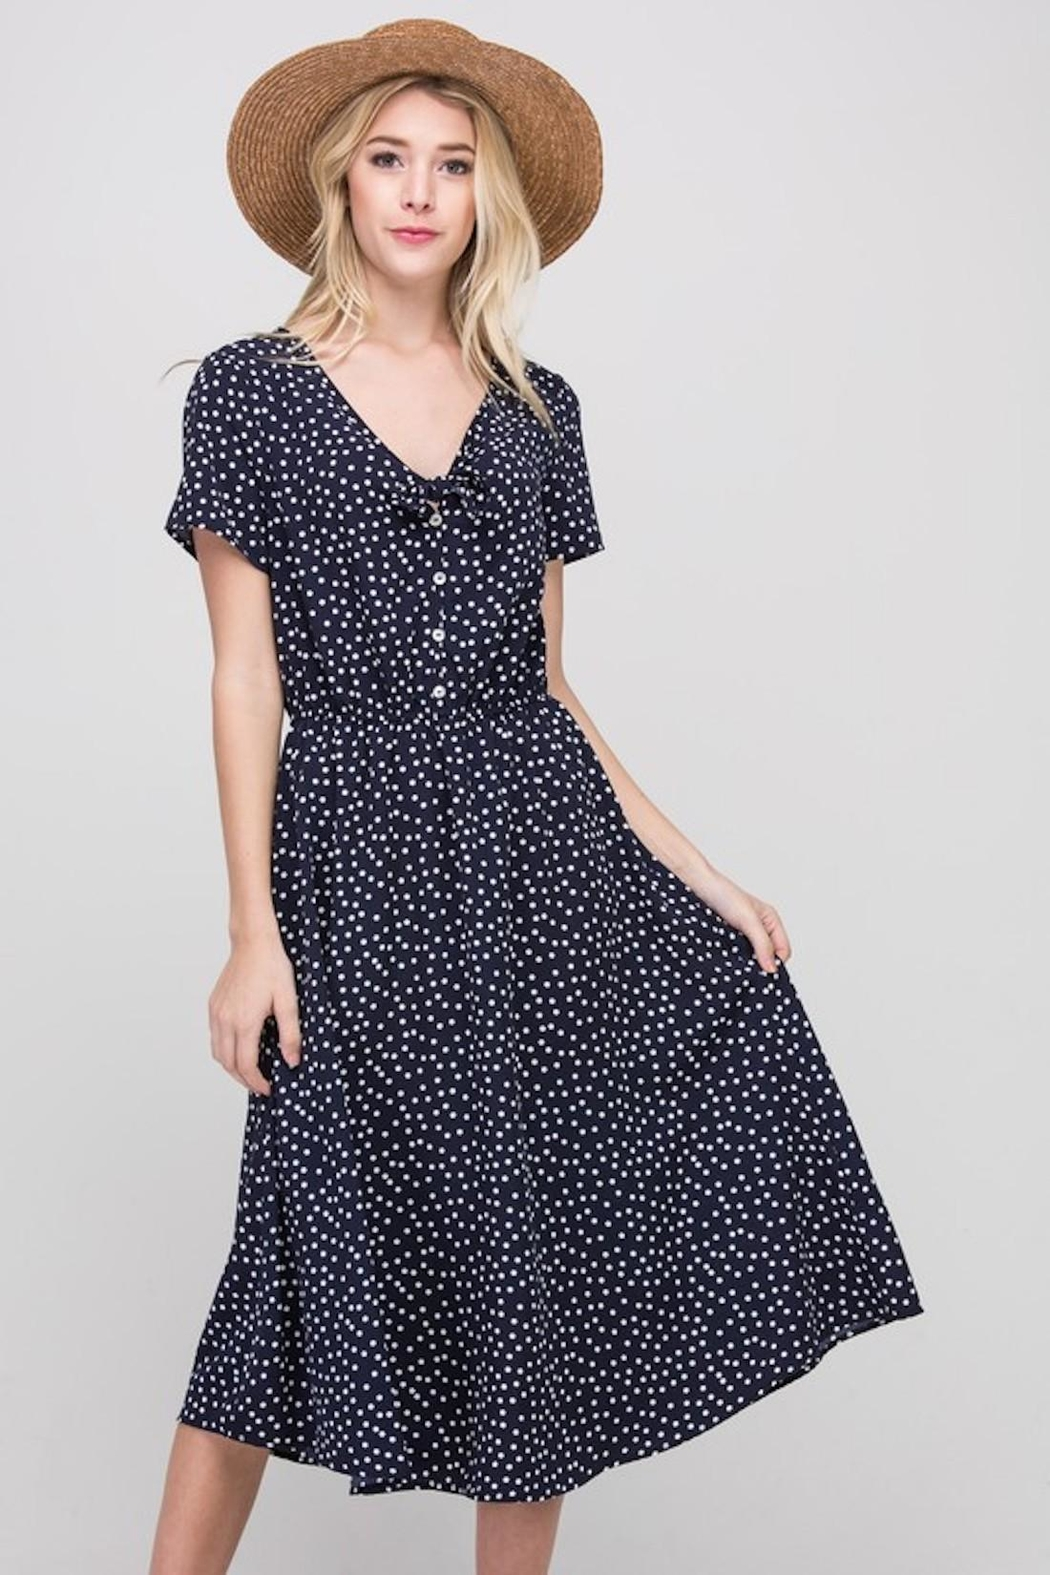 Les Amis Navy Dainty-Dots Dress - Front Full Image